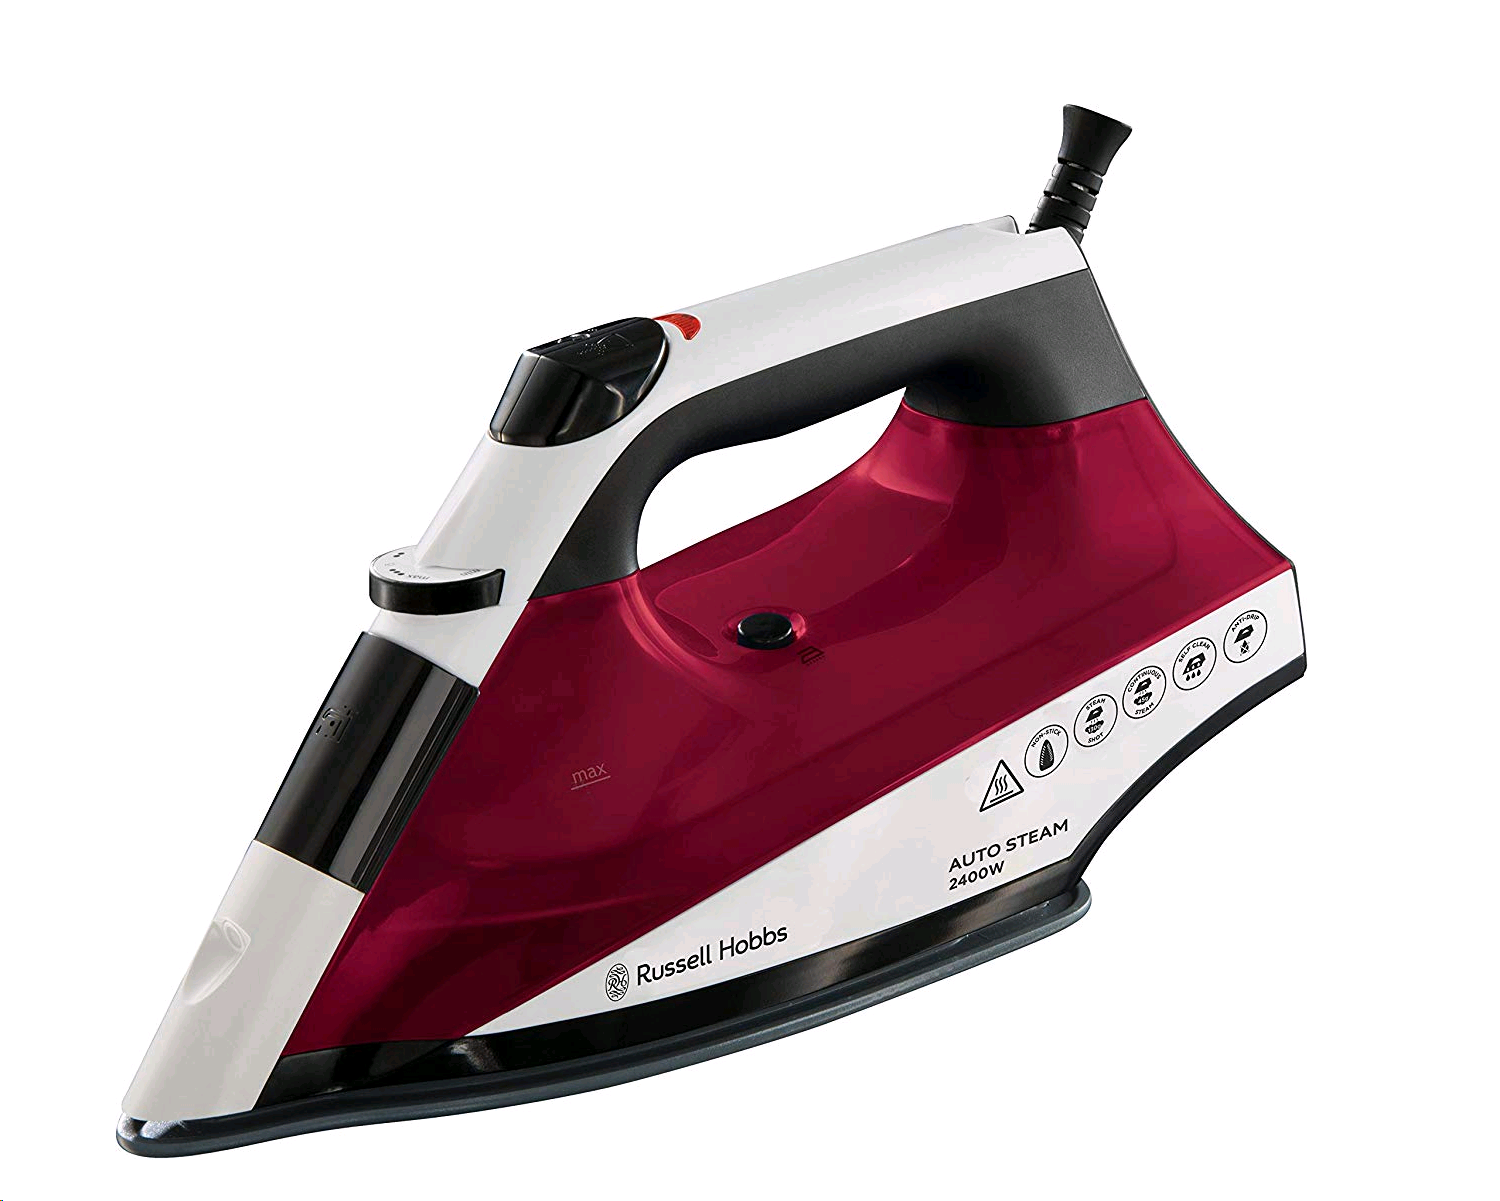 Russell Hobbs Auto Steam Iron Non Stick Plate White/Red